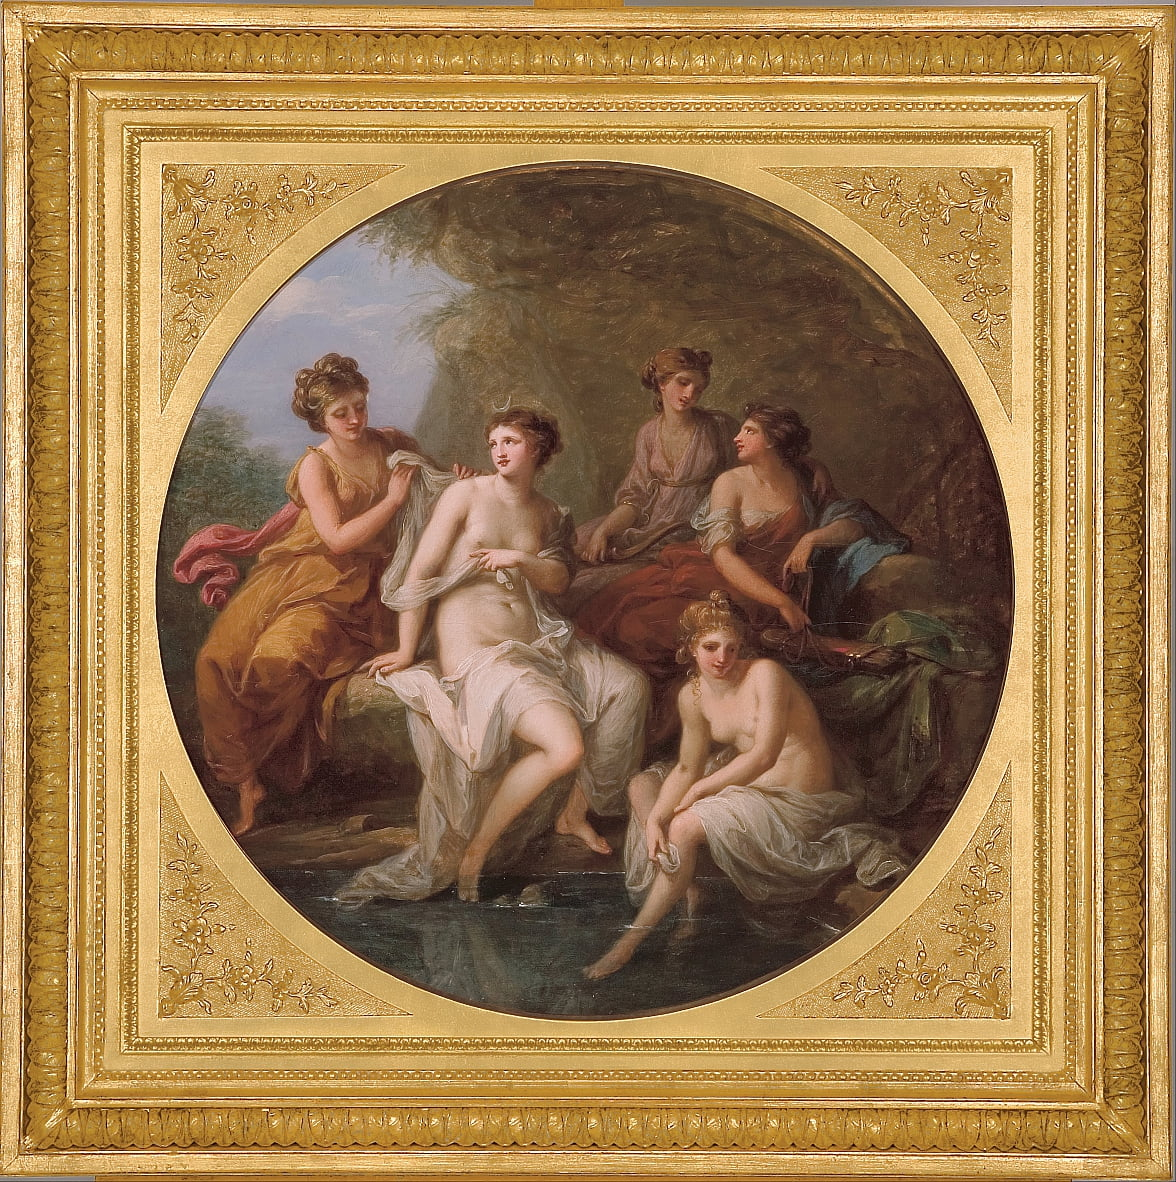 Diana and her nymphs bathing by Angelica Kauffmann